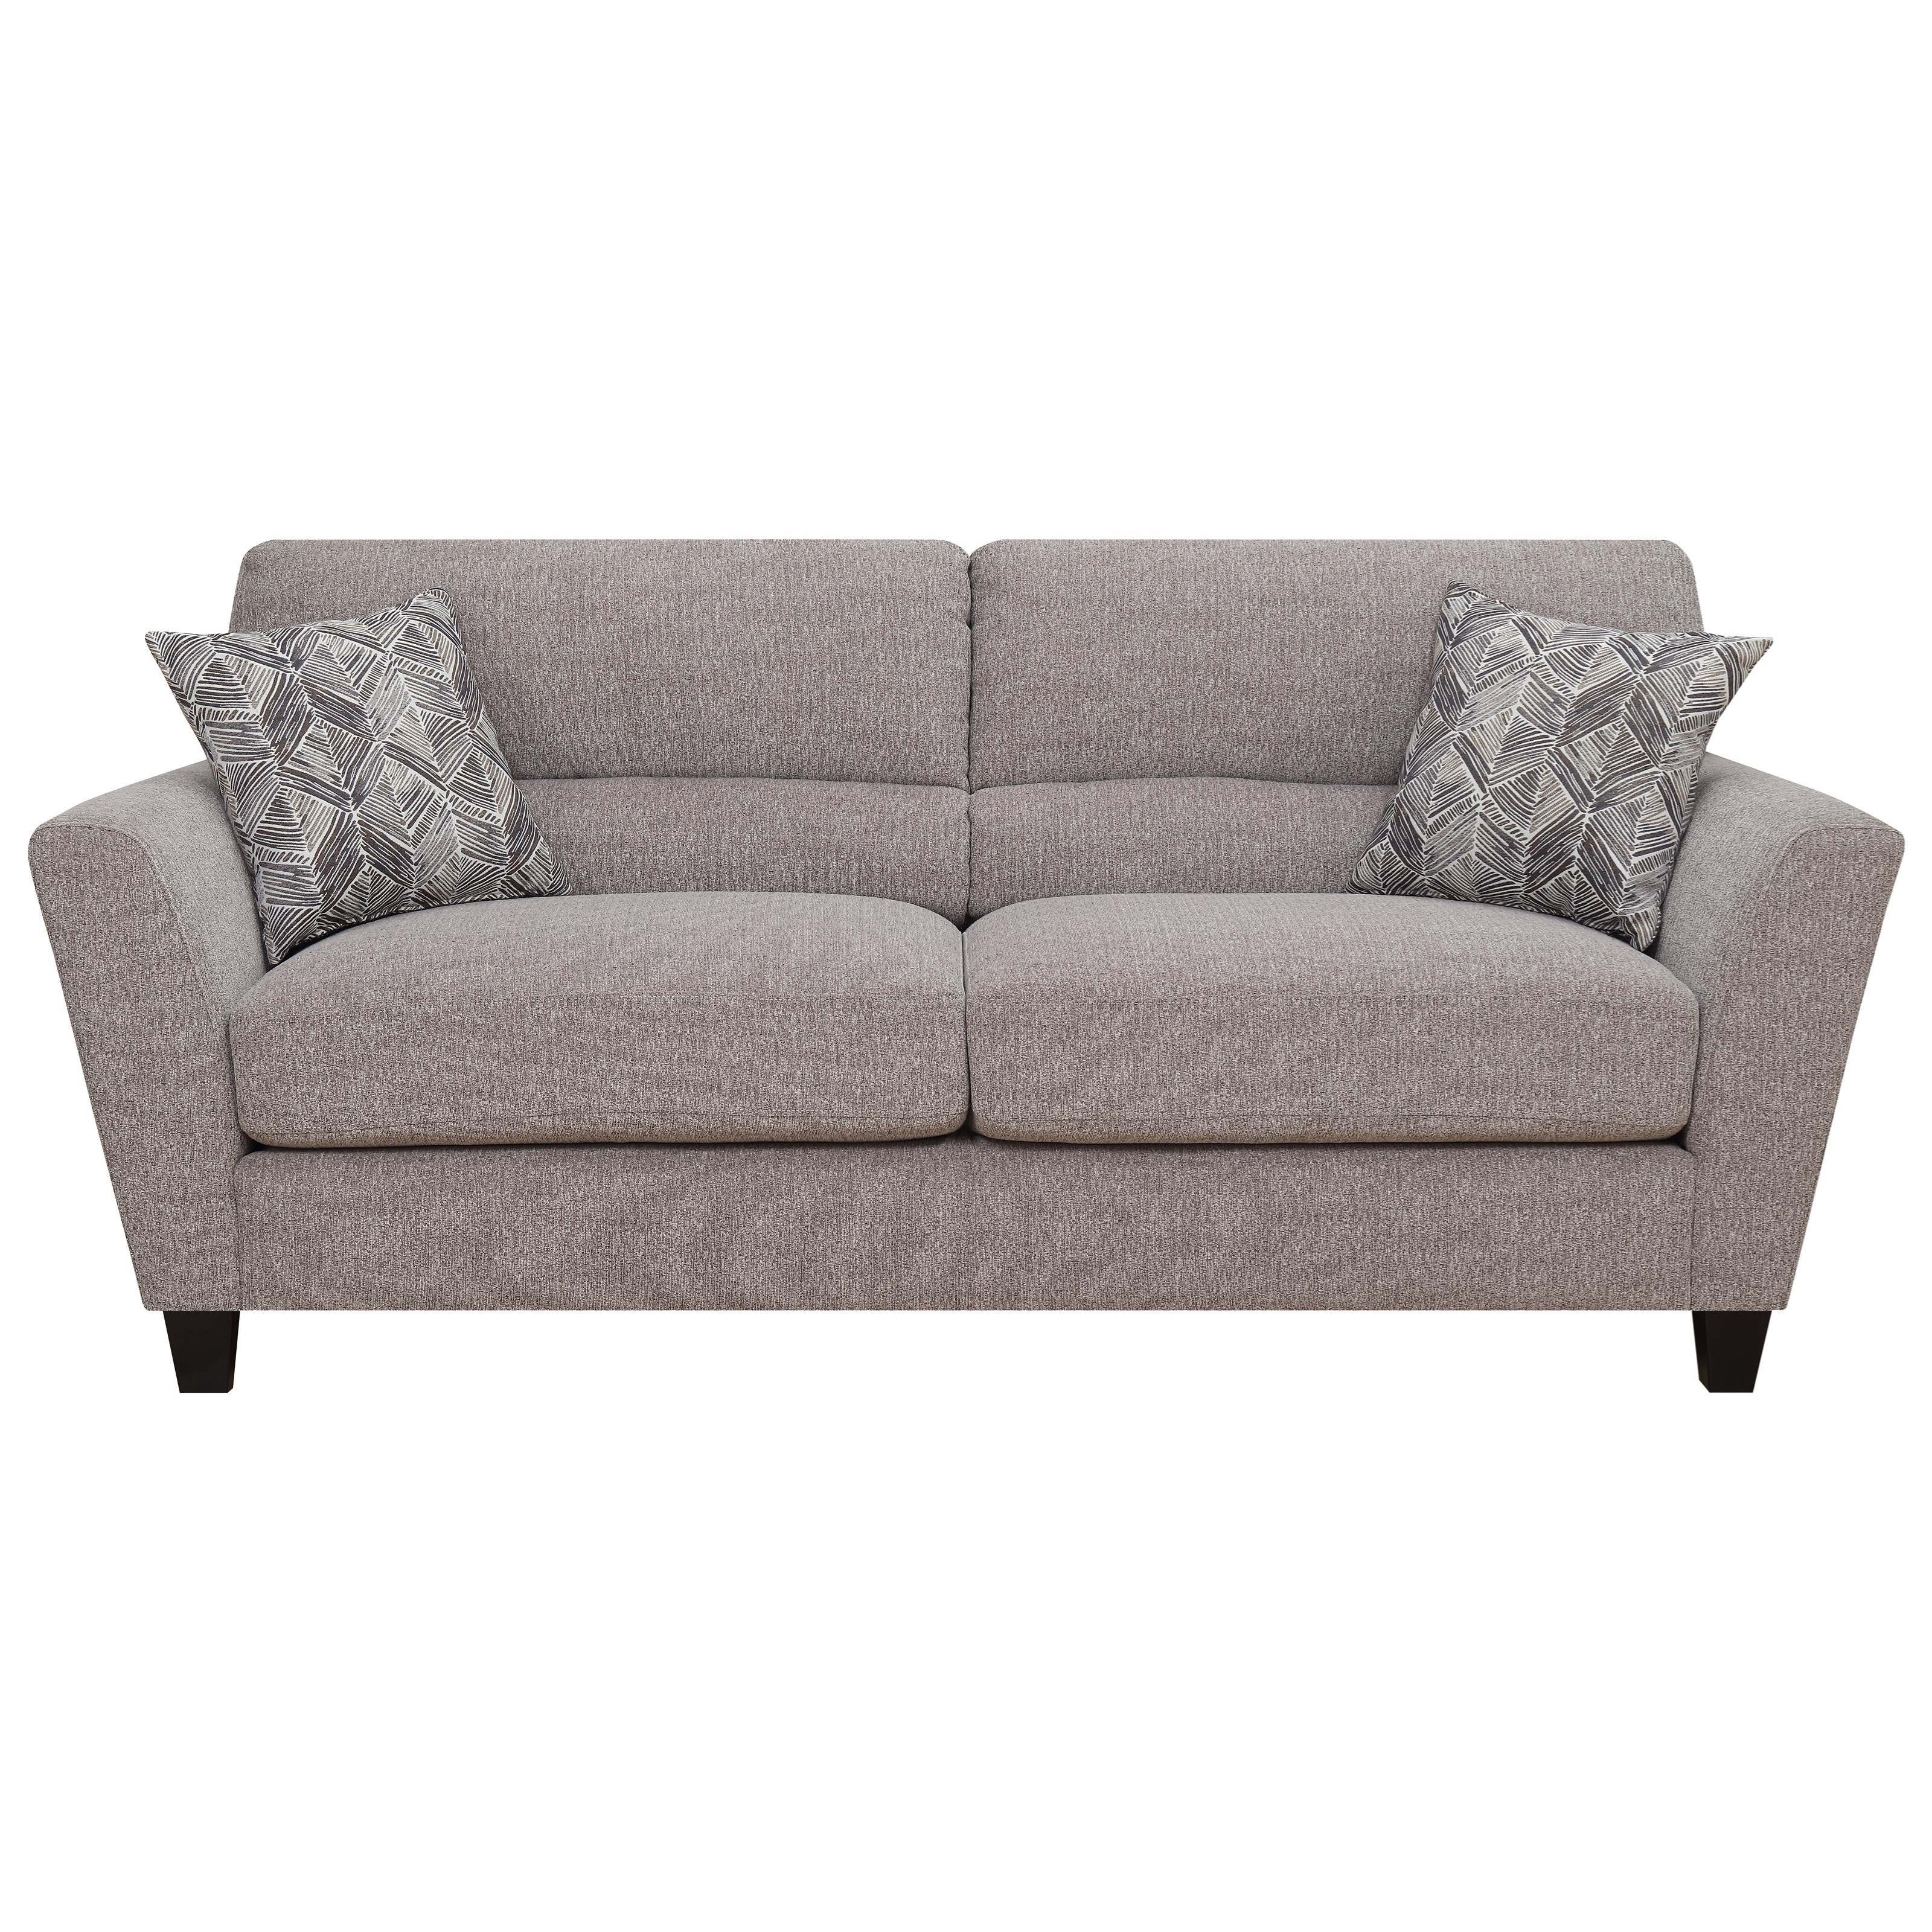 Speakeasy Sofa w/ 2 Accent Pillows by Emerald at Suburban Furniture